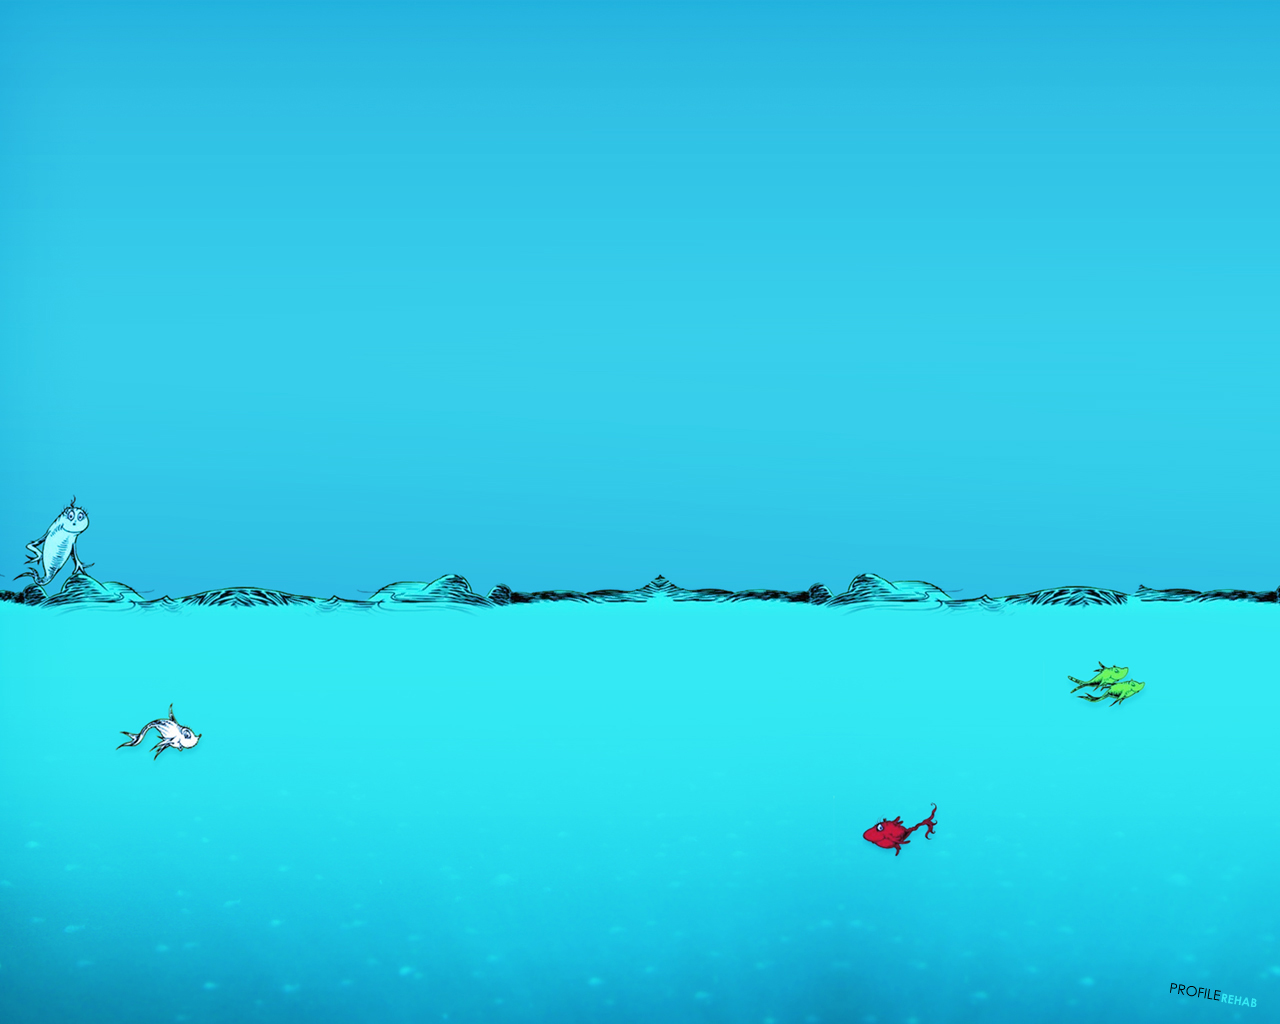 [1280x1024] New One Fish Two Fish Wallpaper   Best Dr 1280x1024